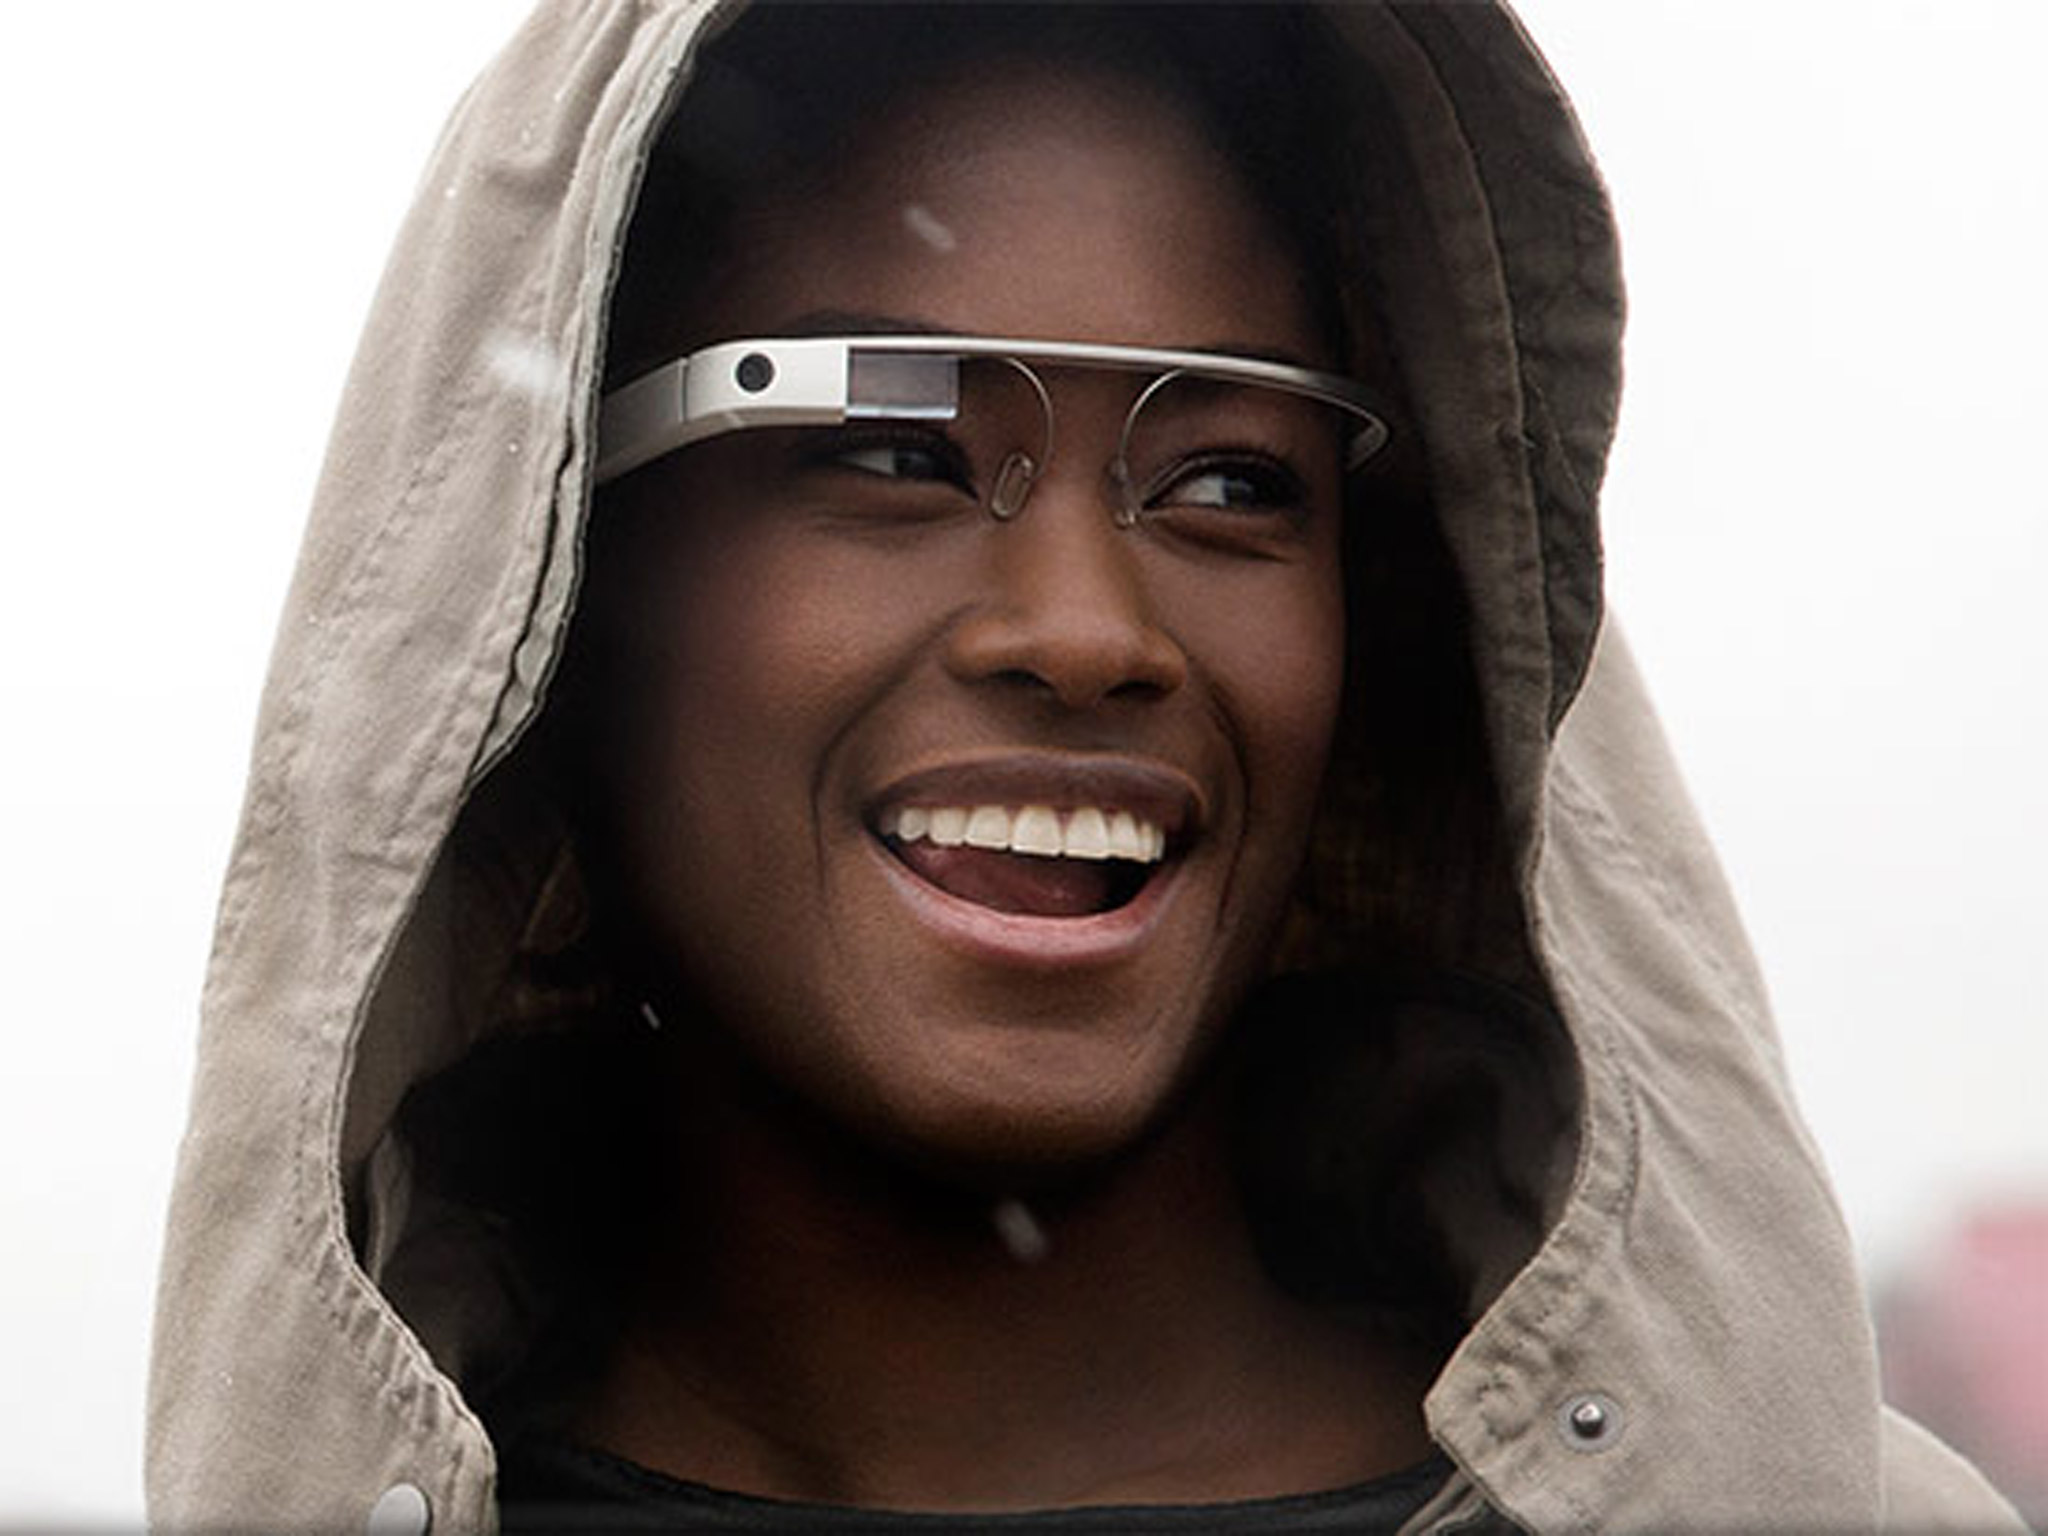 Full matched Google glass and guy